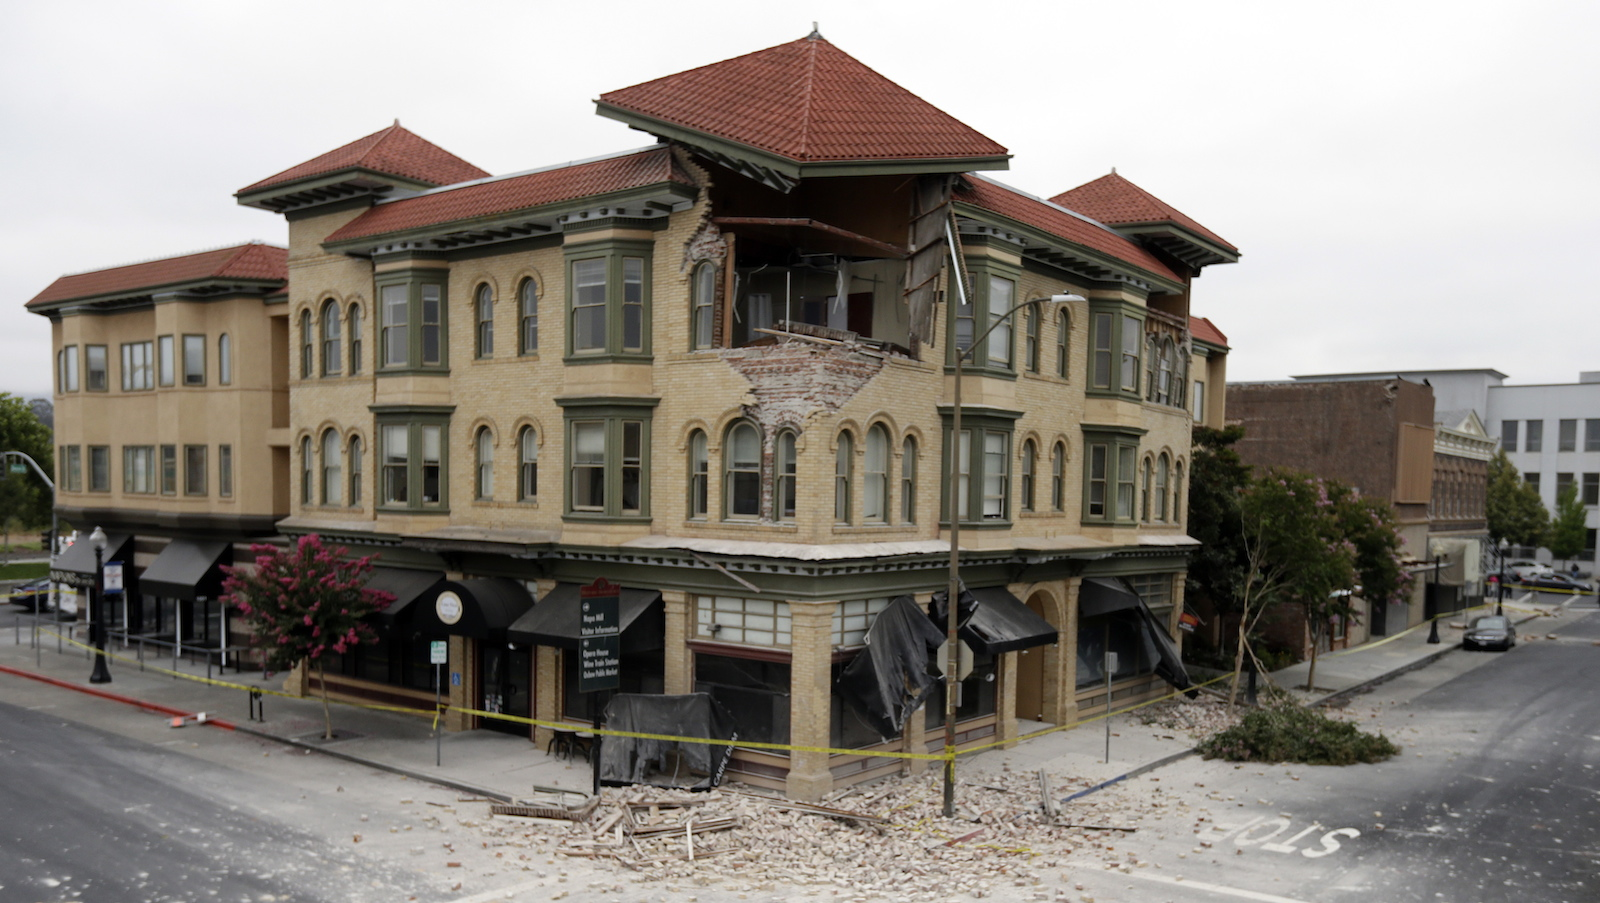 A building is partially collapsed due to a  6.0-magnitude earthquake, Sunday, Aug. 24, 2014, in Napa, Calif. (Ben Margot/AP)